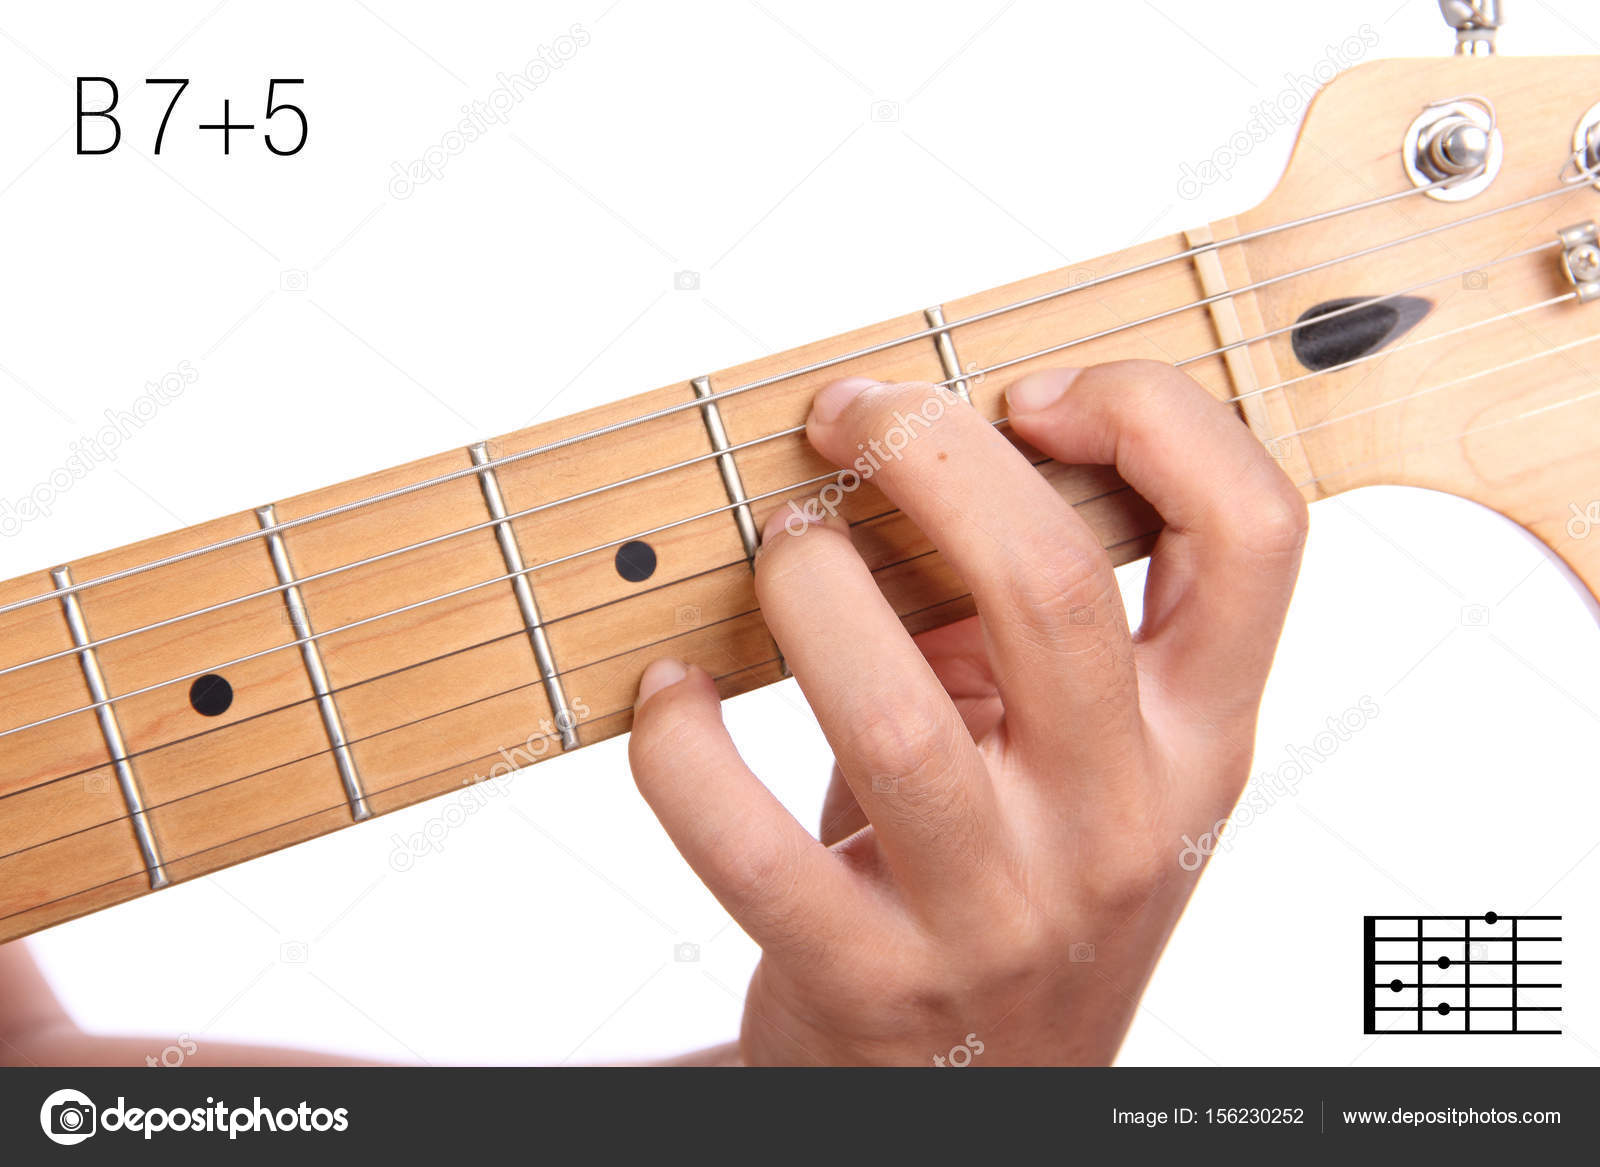 B75 Guitar Chord Tutorial Stock Photo Pepscostudio 156230252